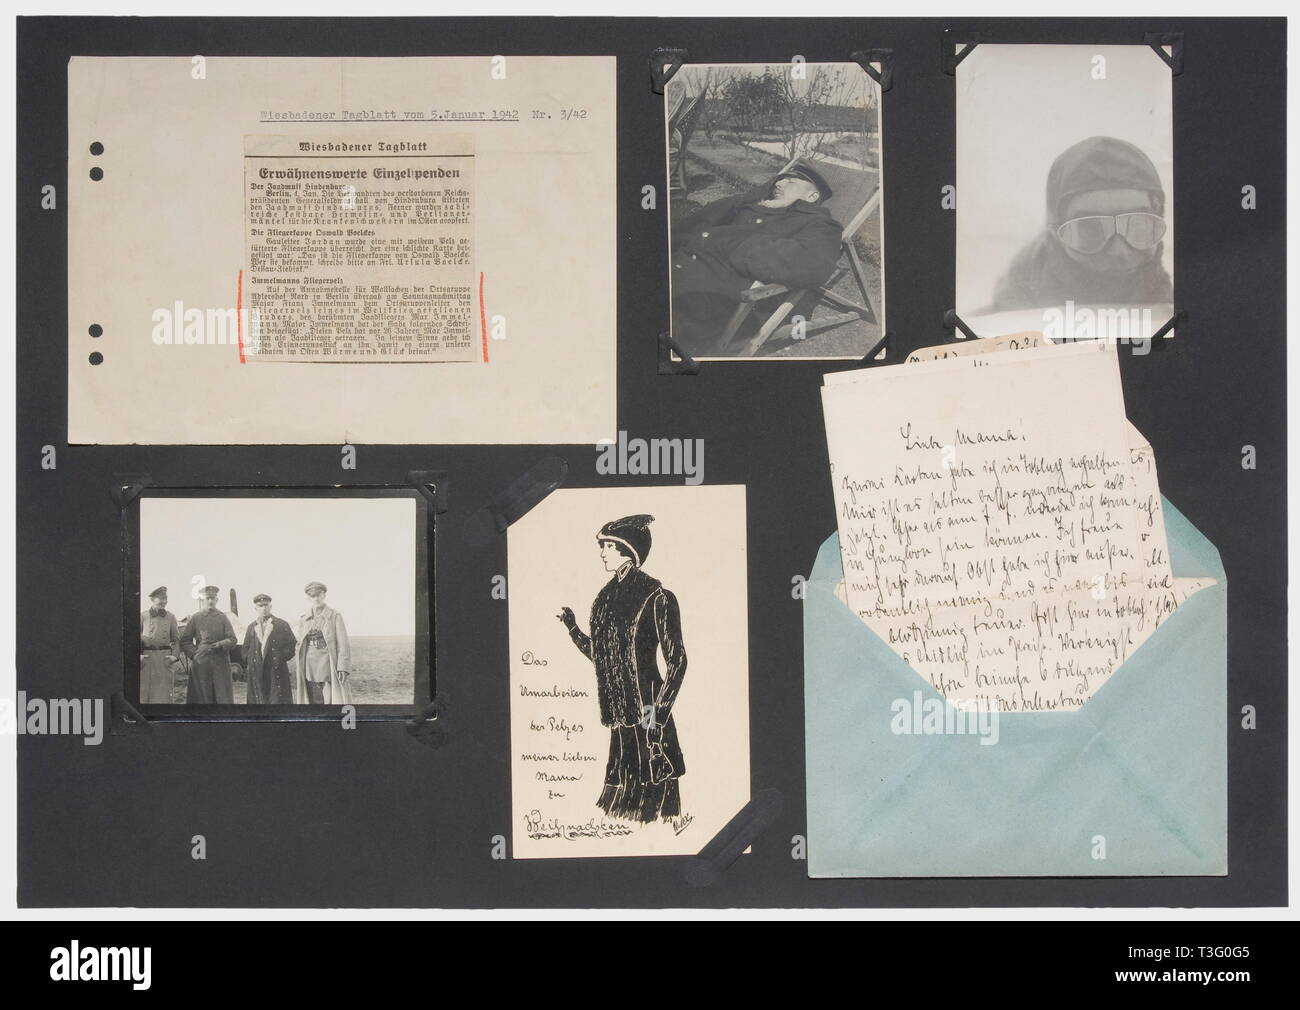 """First Lieutenant Max Immelmann (1890 - 1916), a letter to his mother, probably late 1915 Obviously written hastily in ink on chequered paper, short replies and a few questions answering some previous correspondence (""""Well, at least I have finally answered the postcards""""/""""Many, many warm greetings from your son Max""""). On the back """"The fur coat in the chest is from Englishman no. 6."""" ... The fur needs repair. ... Also the compass, the wristwatch from no. 6, a radio button on the undercarriage ... of no. 4, machine gun lock of no. 3. Identi historic, Additional-Rights-Clearance-Info-Not-Available Stock Photo"""